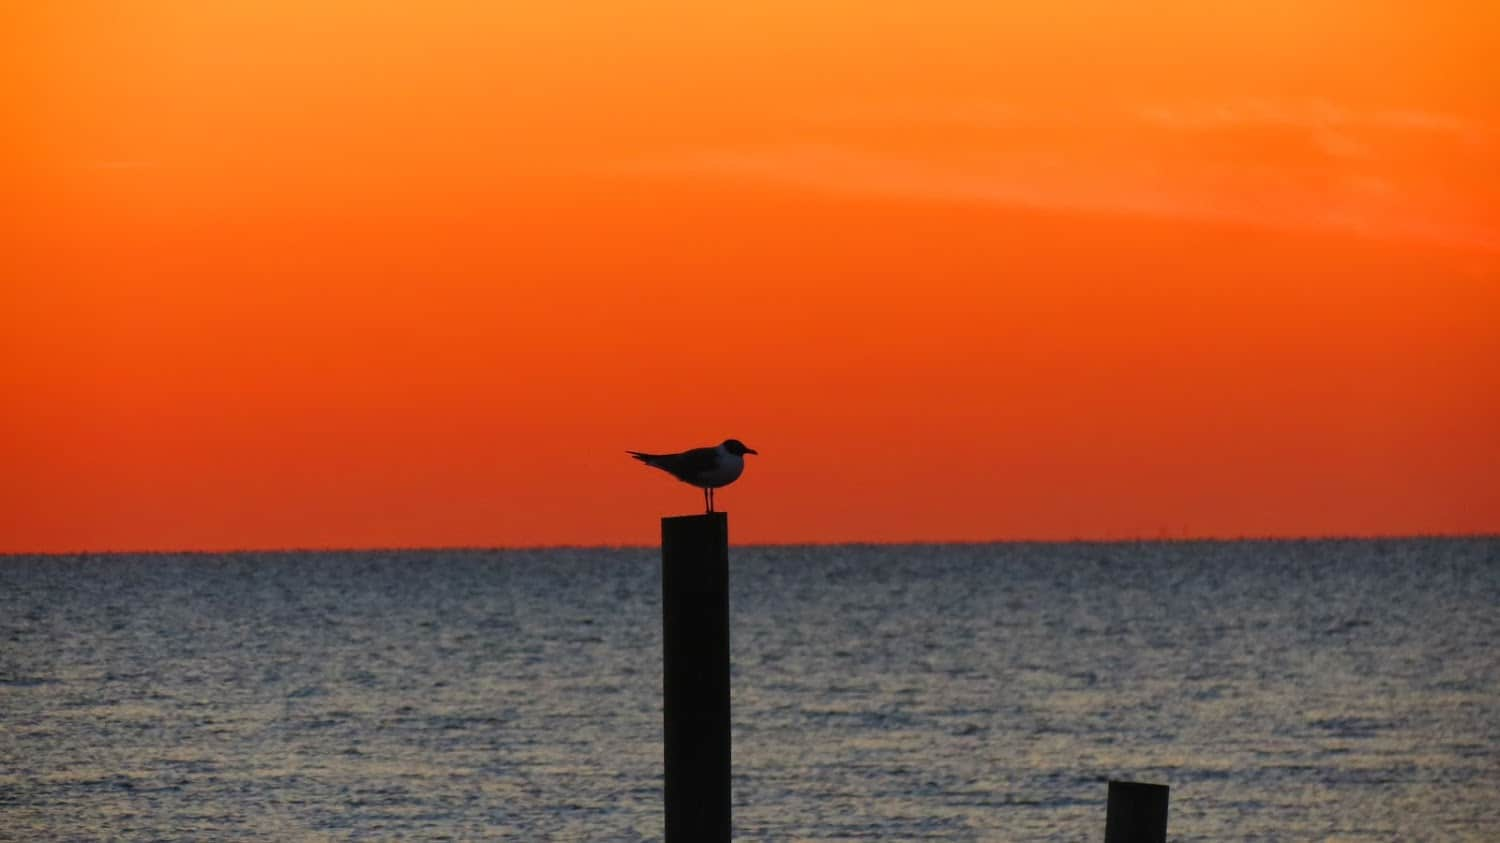 A seagull and the sunset.